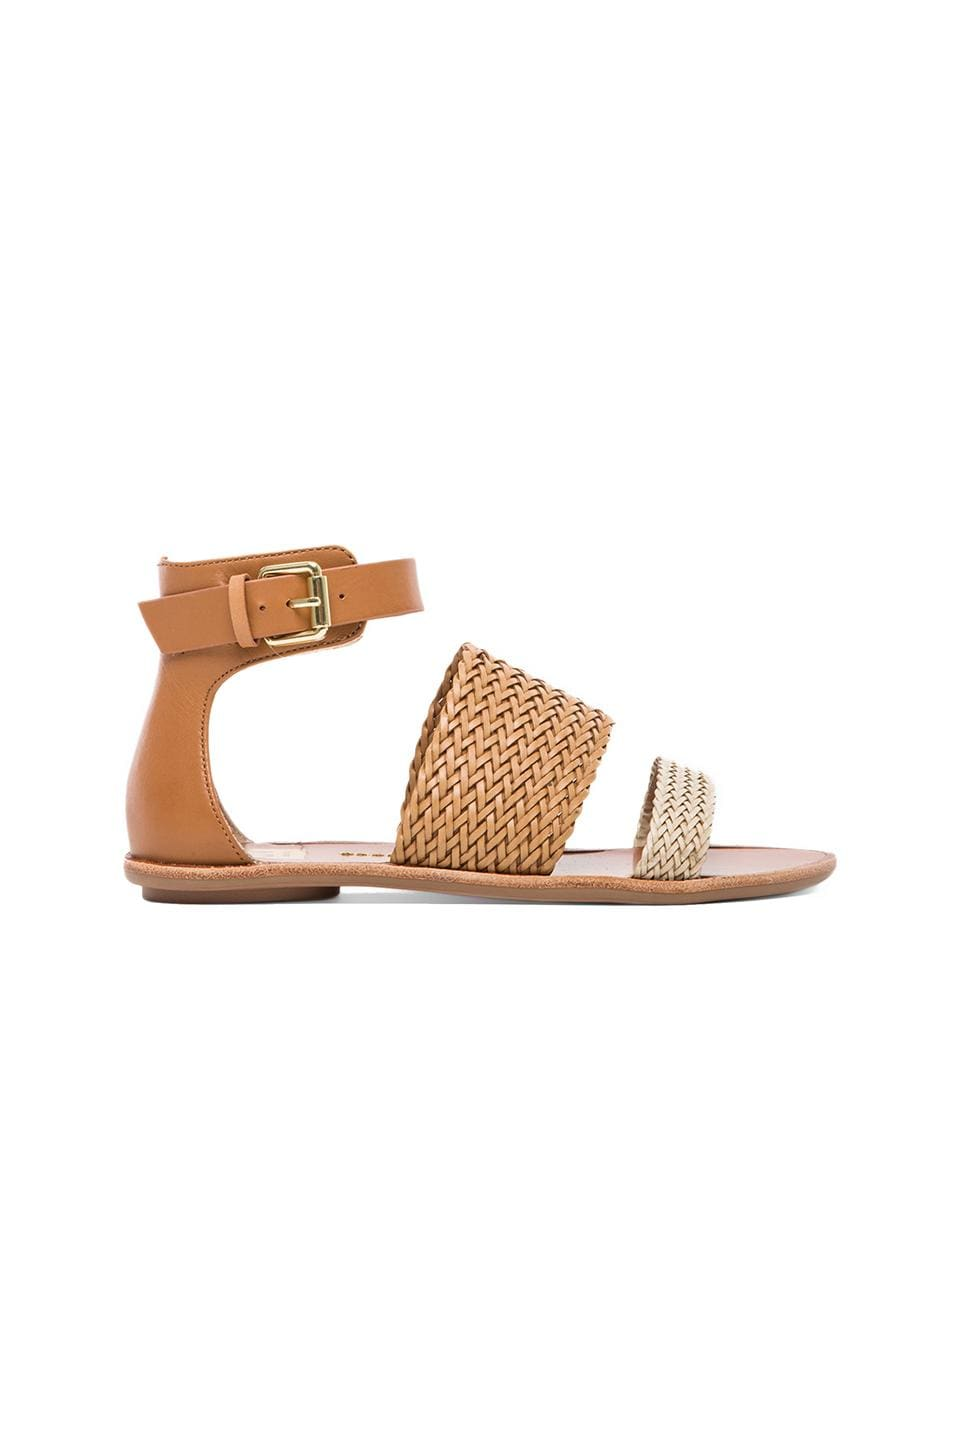 Dolce Vita Viera Sandal in Bone & Honey